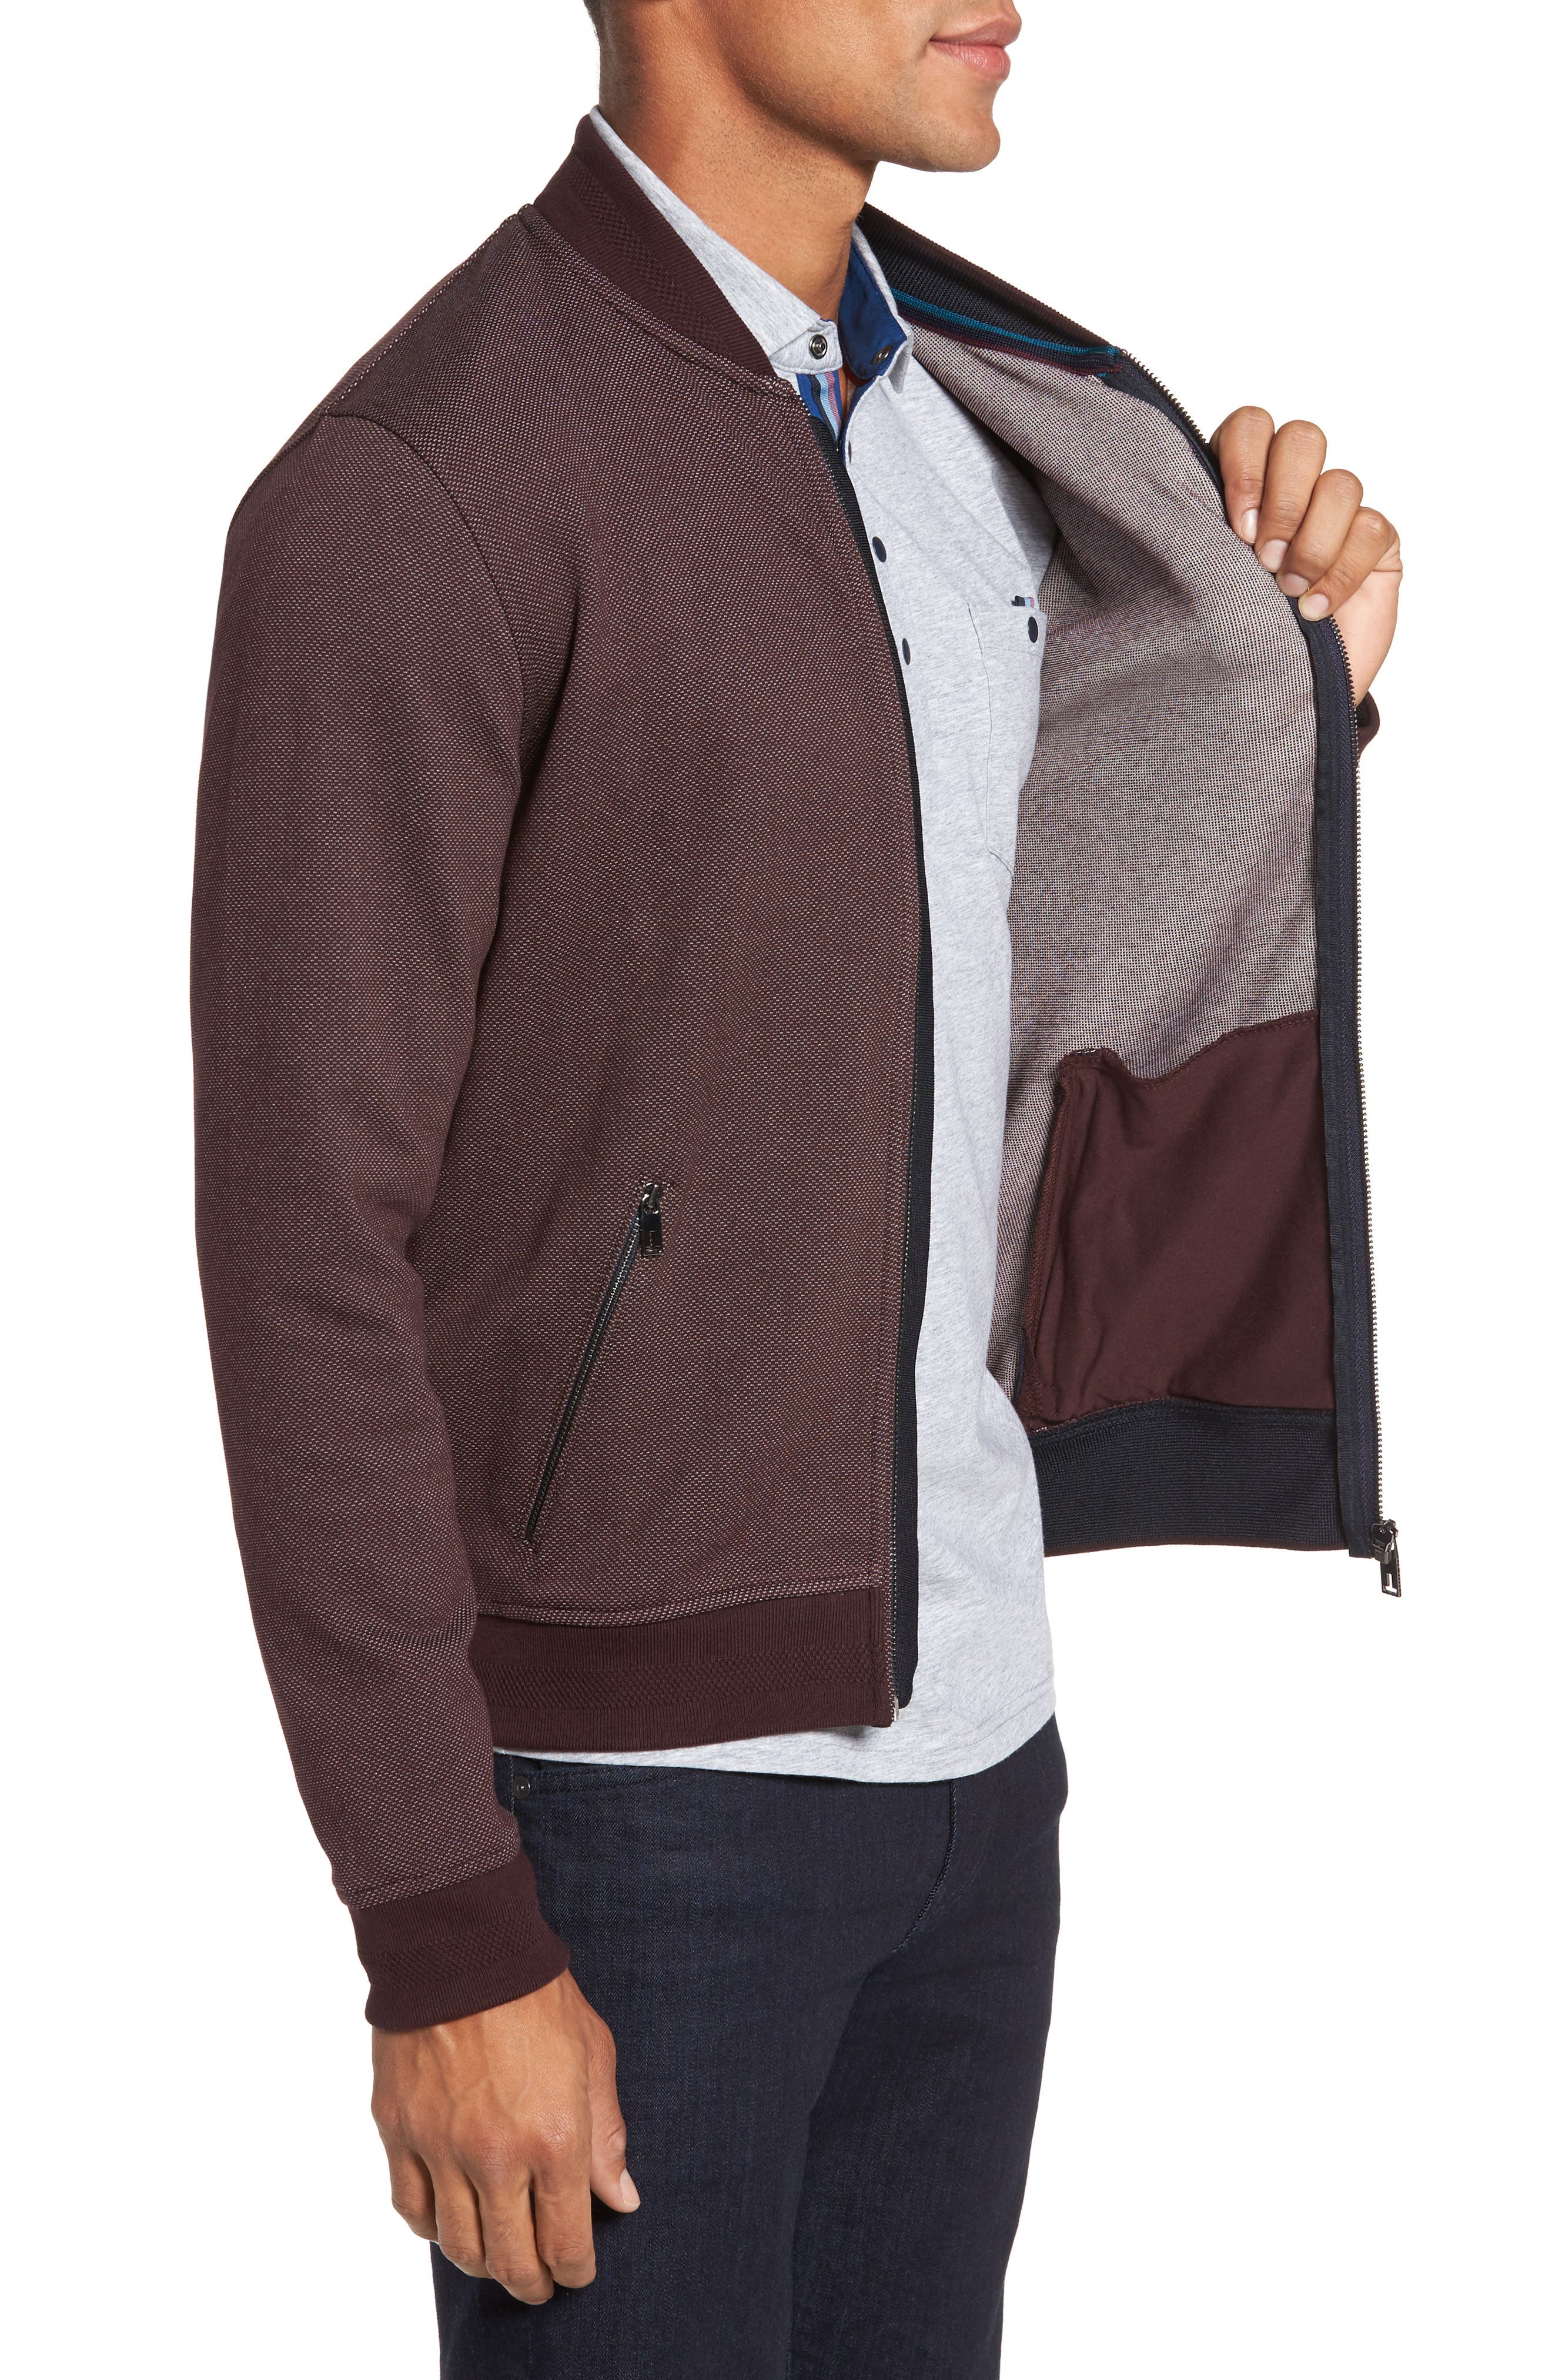 Fowler Jersey Bomber Jacket,                             Alternate thumbnail 3, color,                             601